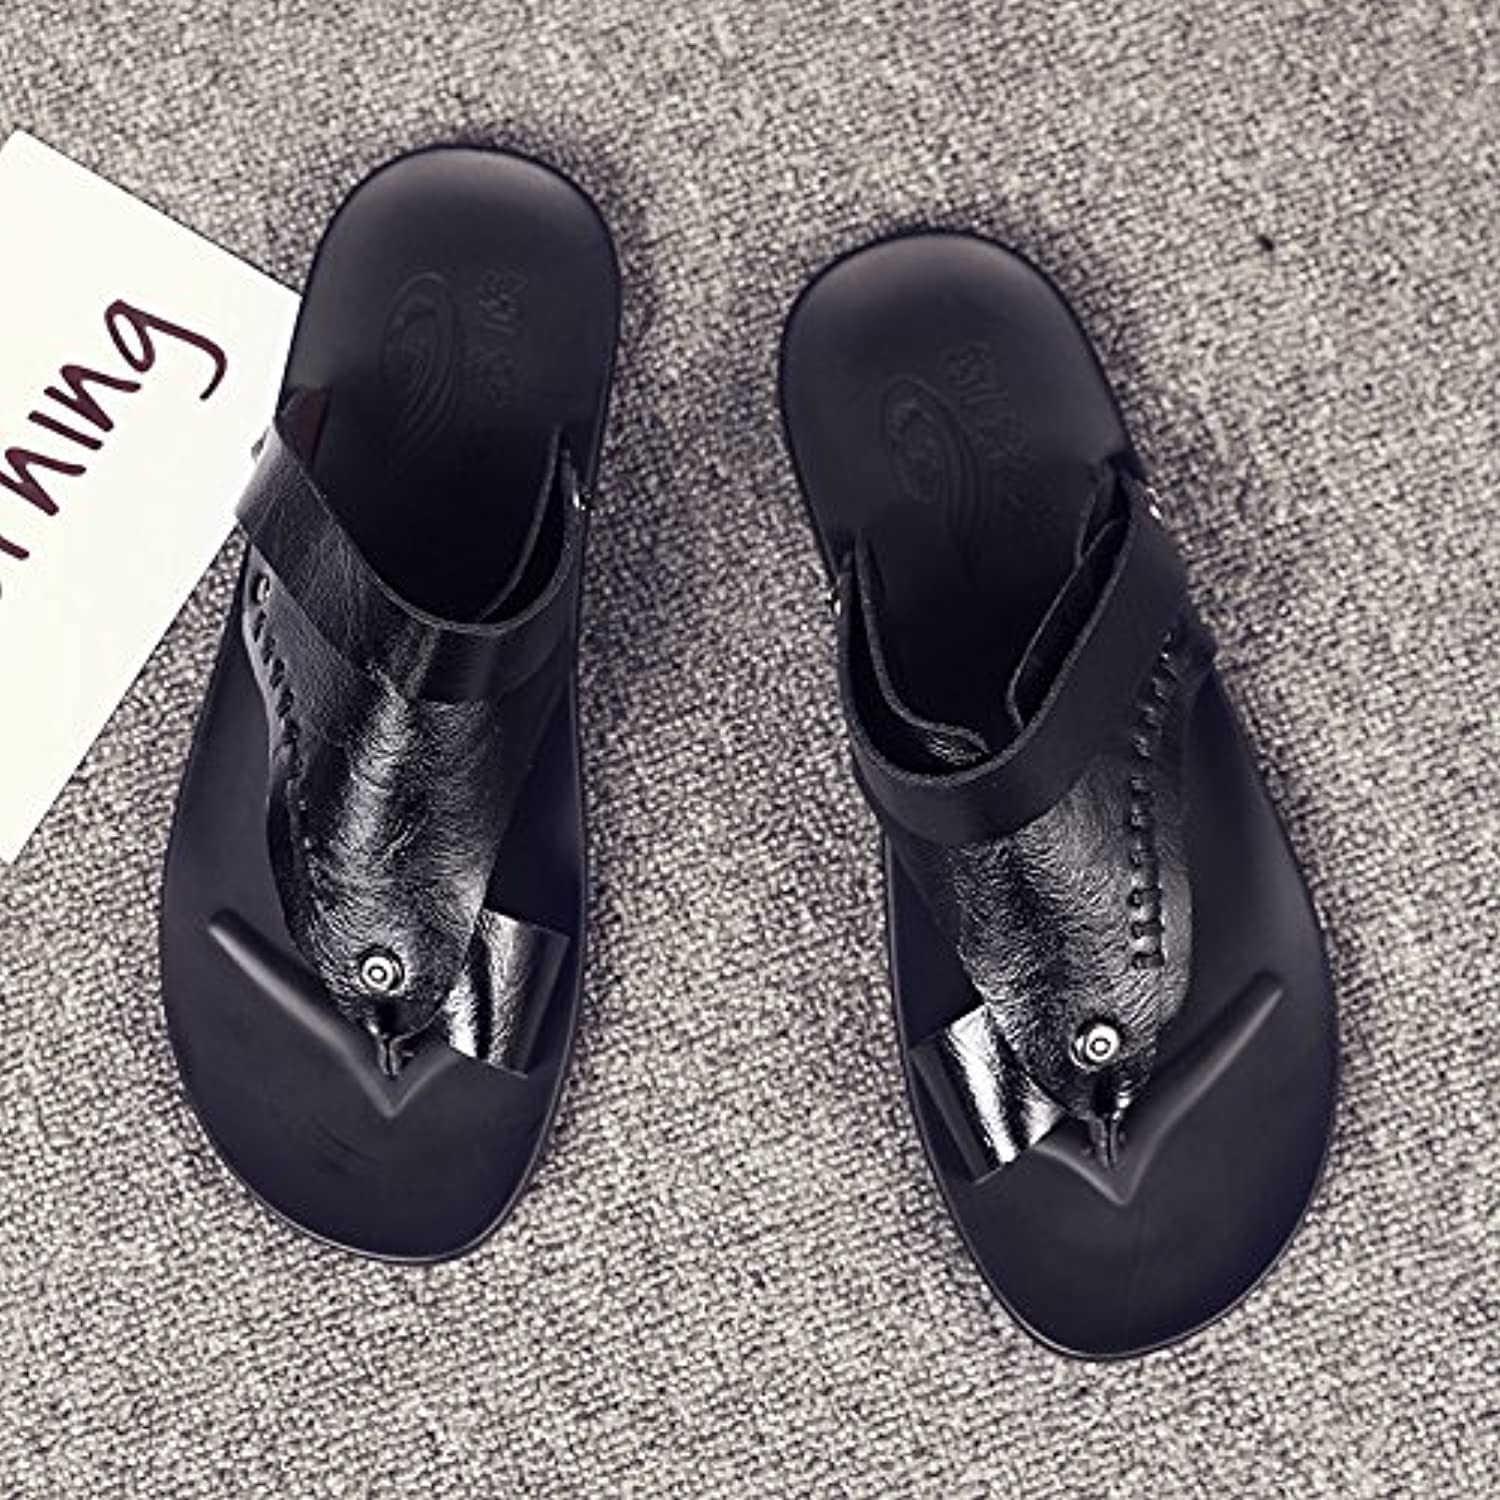 @Sandals Slippers Fashionable Wear New Casual Men Beach